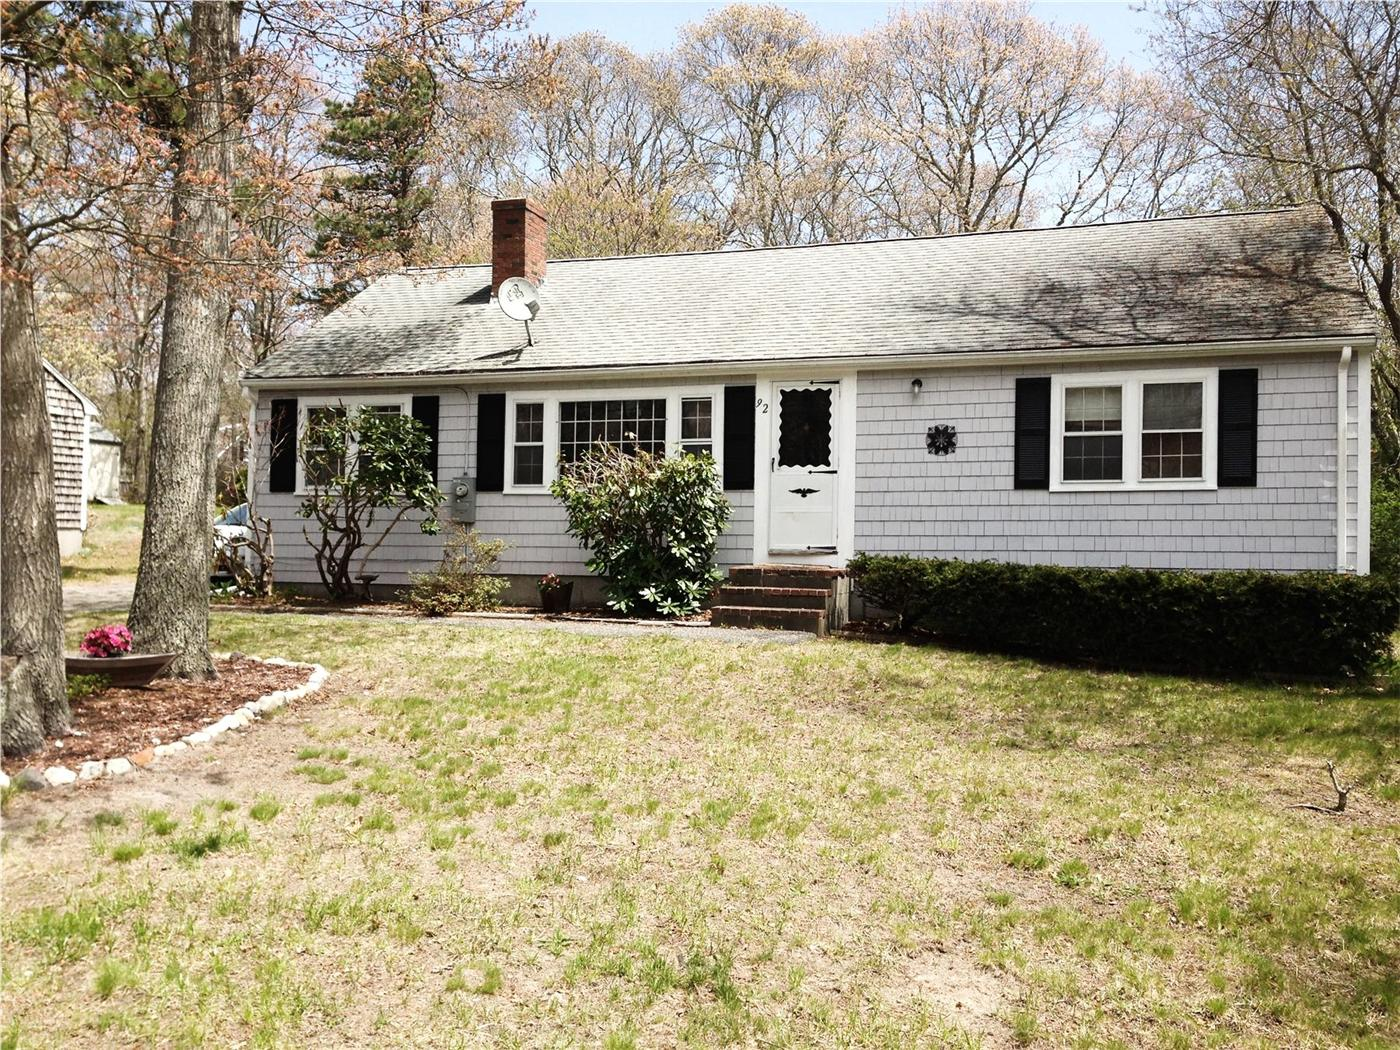 Hyannis Vacation Rental Home In Cape Cod Ma 02601 Id 24369